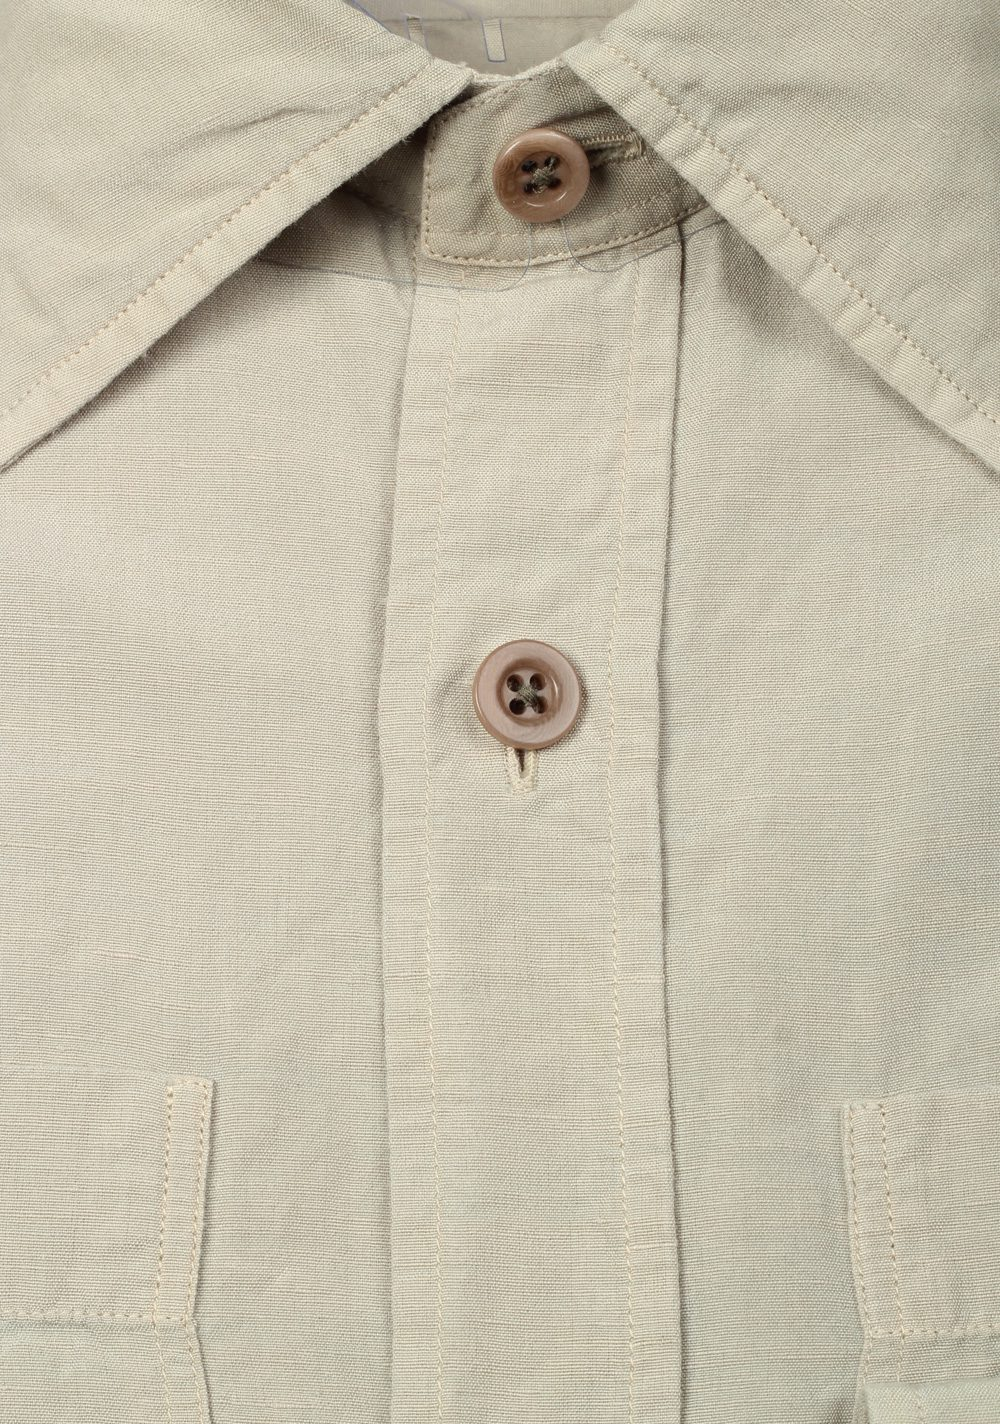 TOM FORD Solid Beige Casual Shirt Size 40 / 15,75 U.S. | Costume Limité